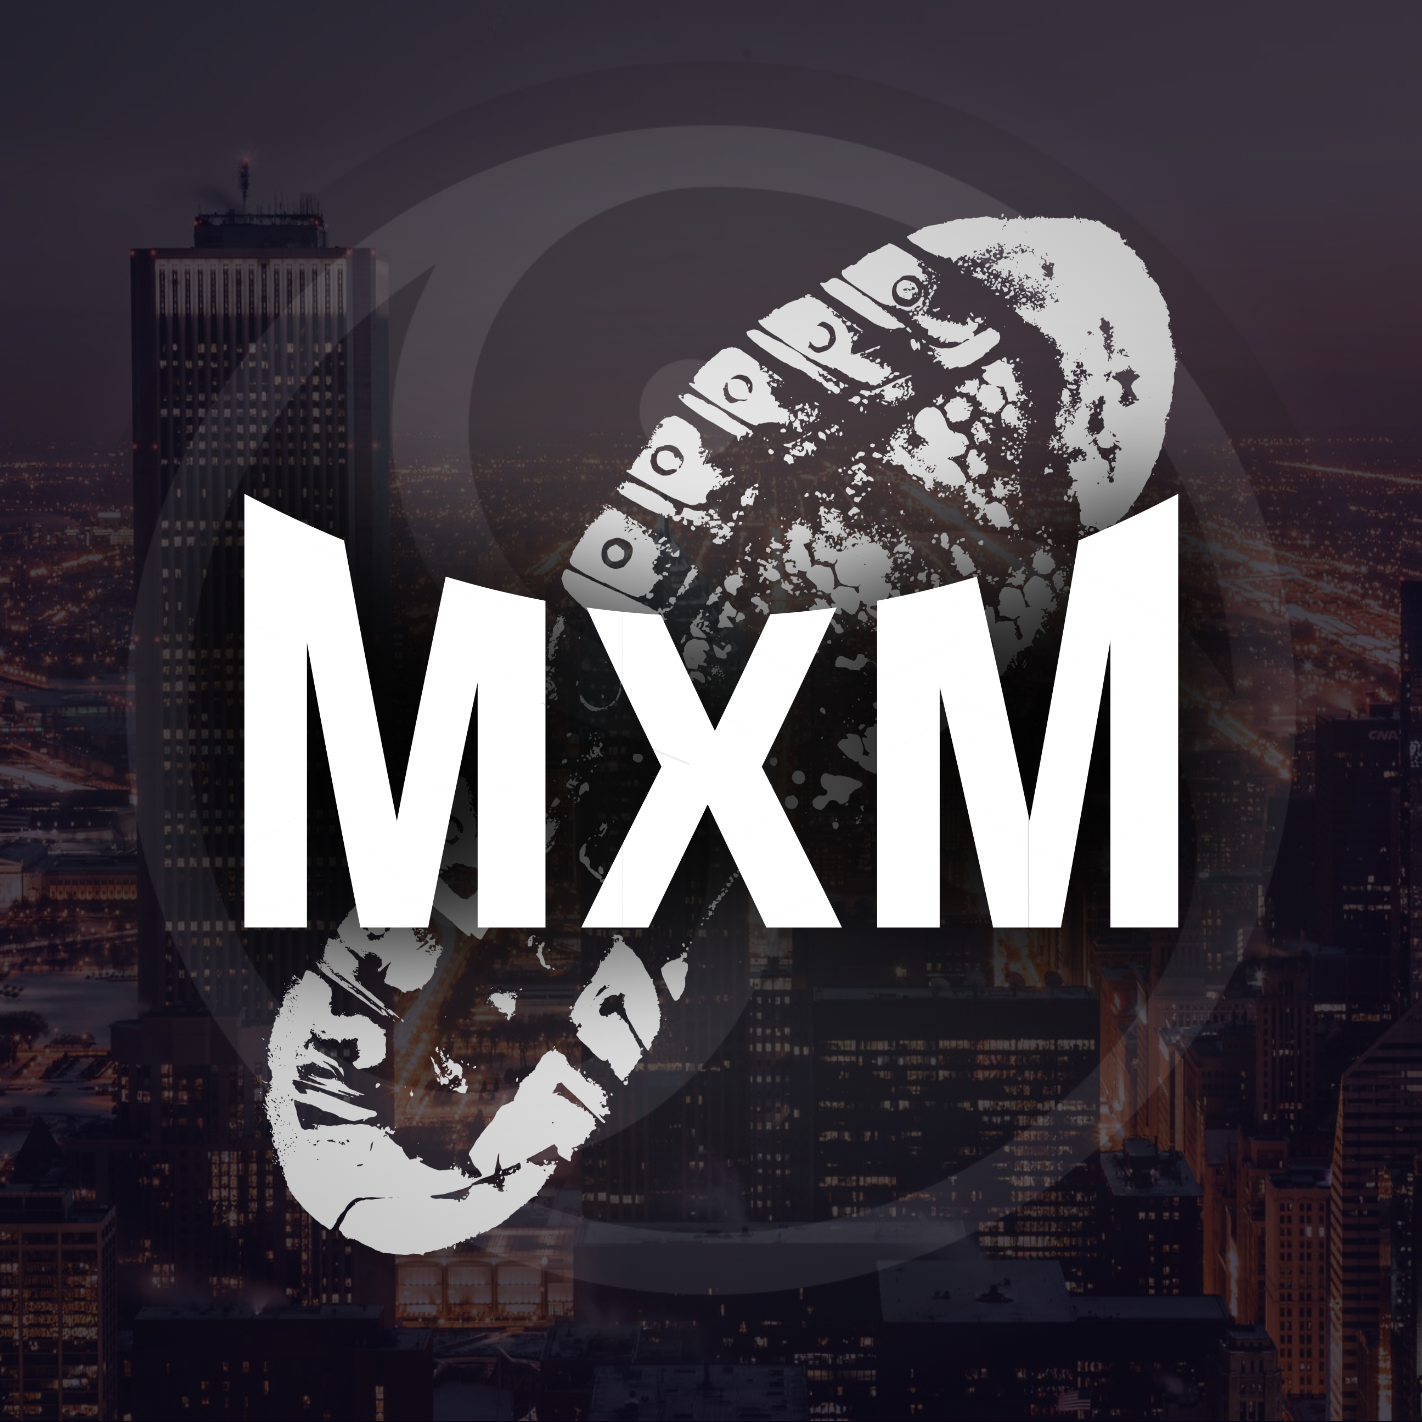 MxM logo graphic